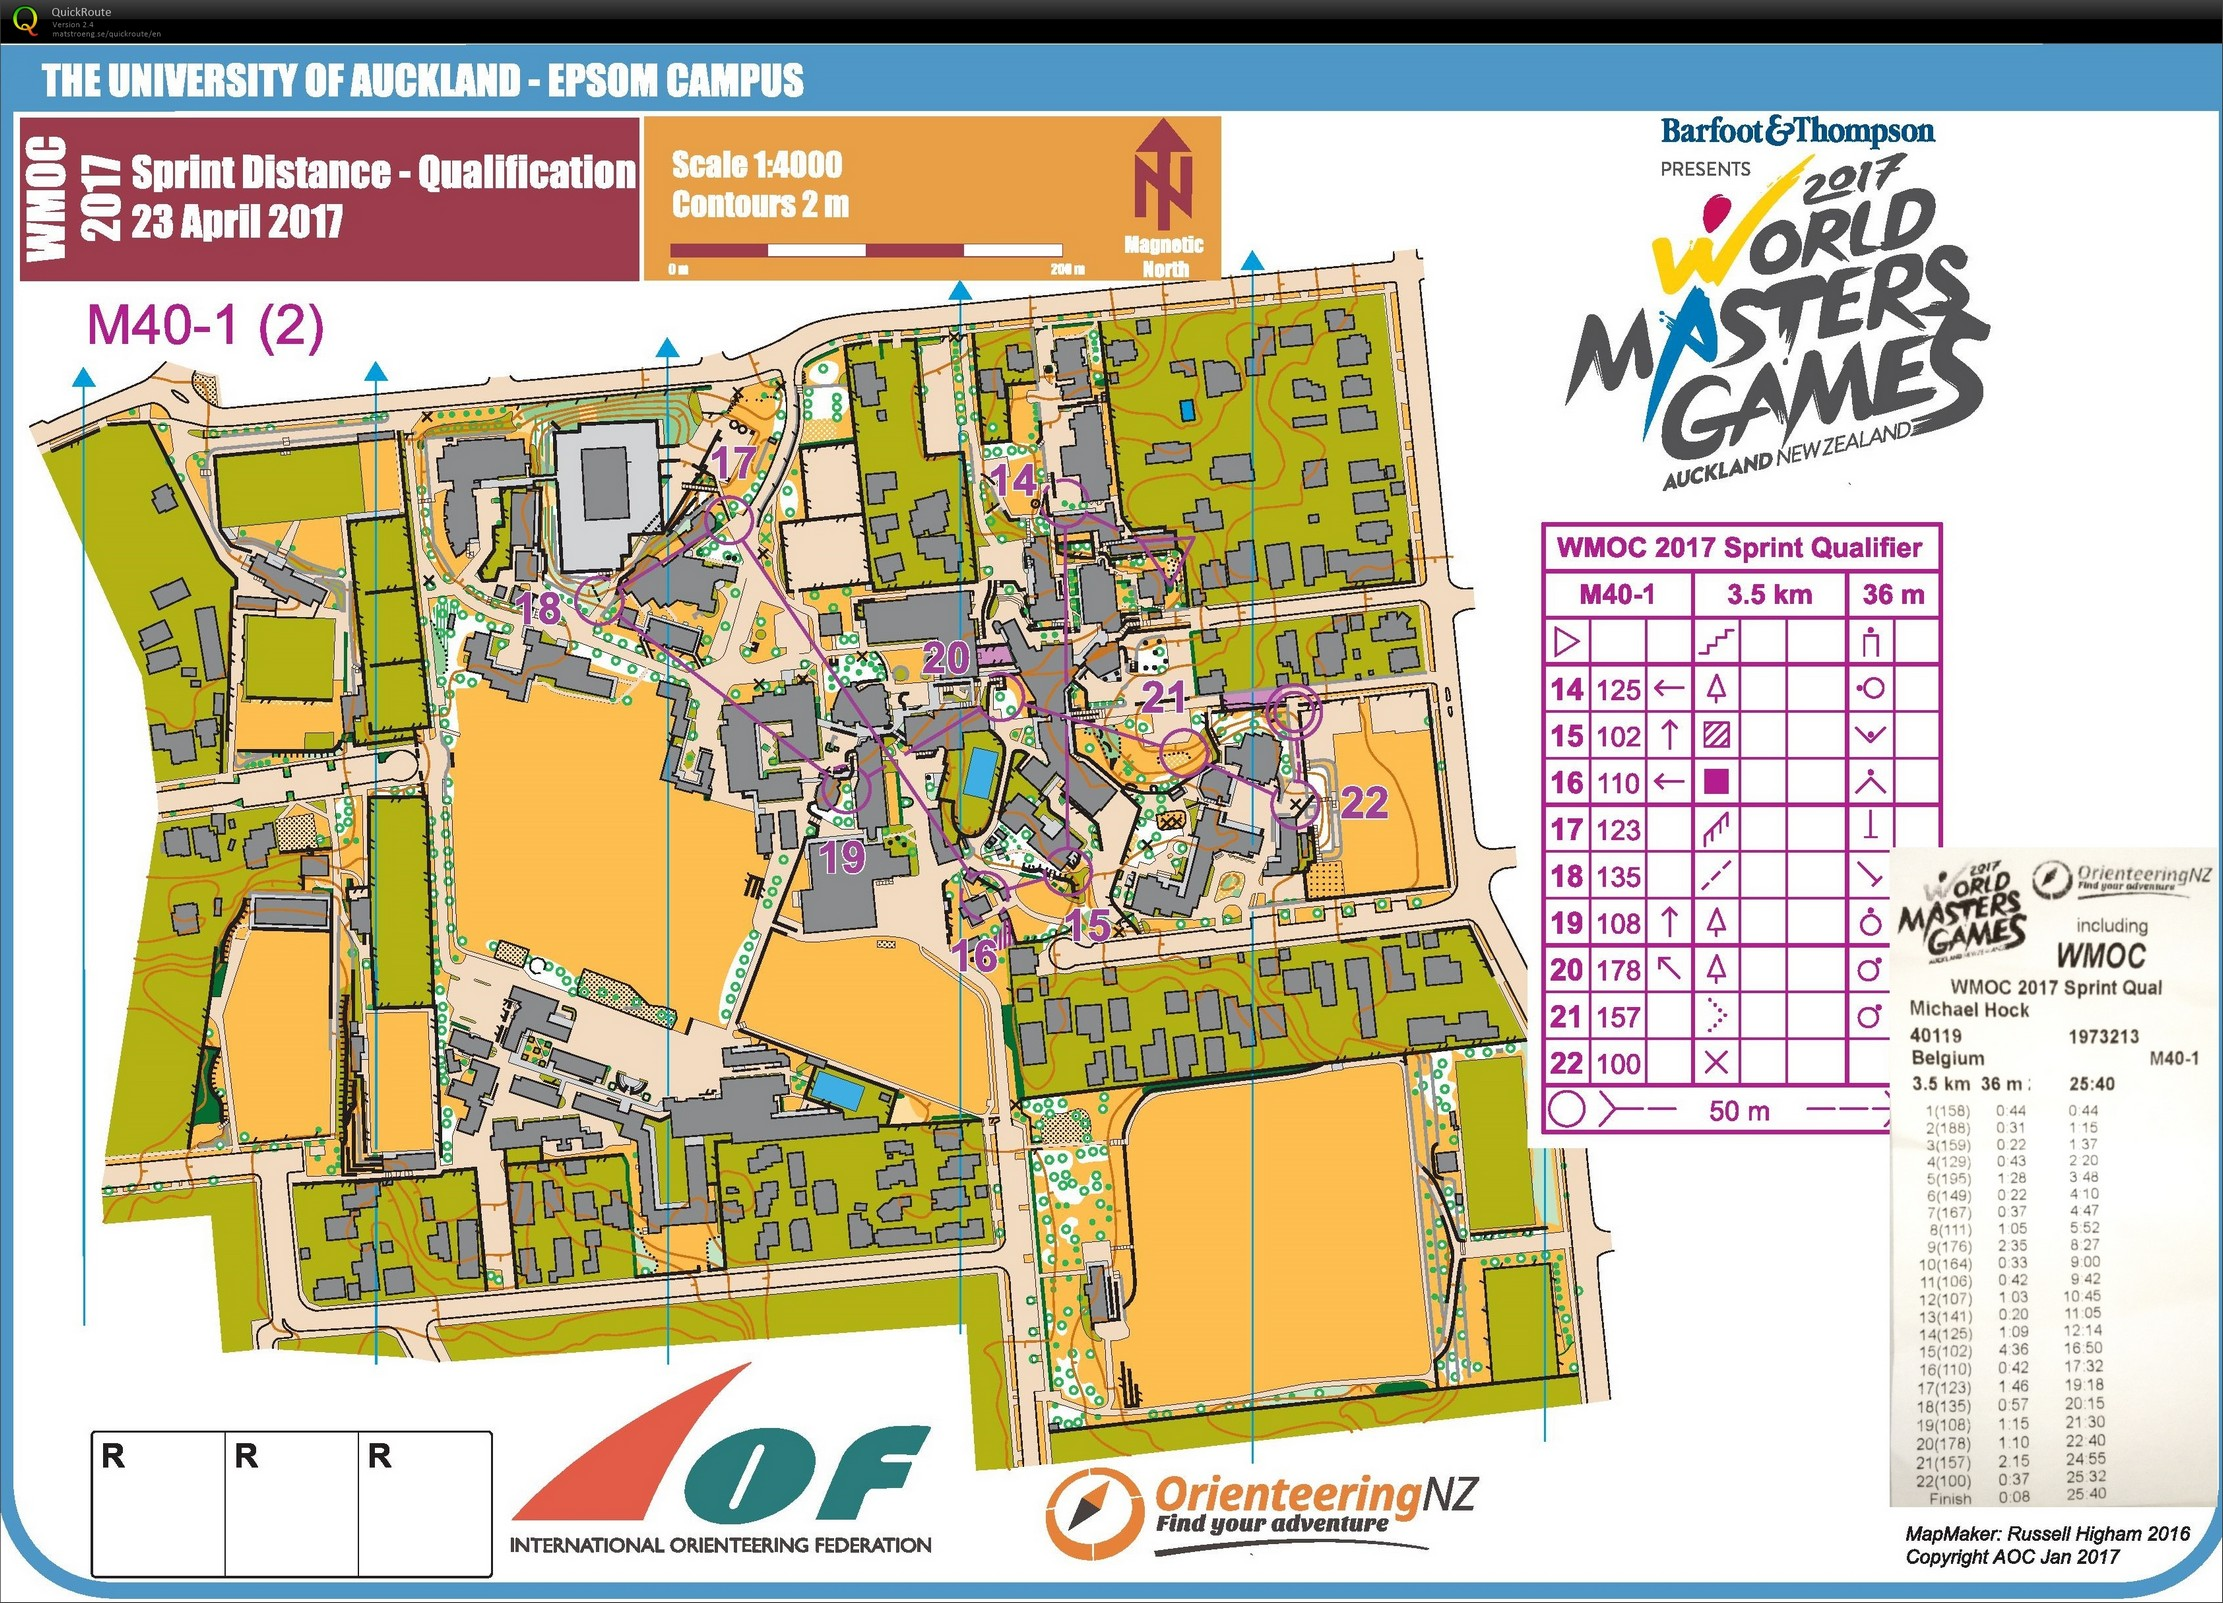 WMOC 2017 Sprint Qualification (23.04.2017)